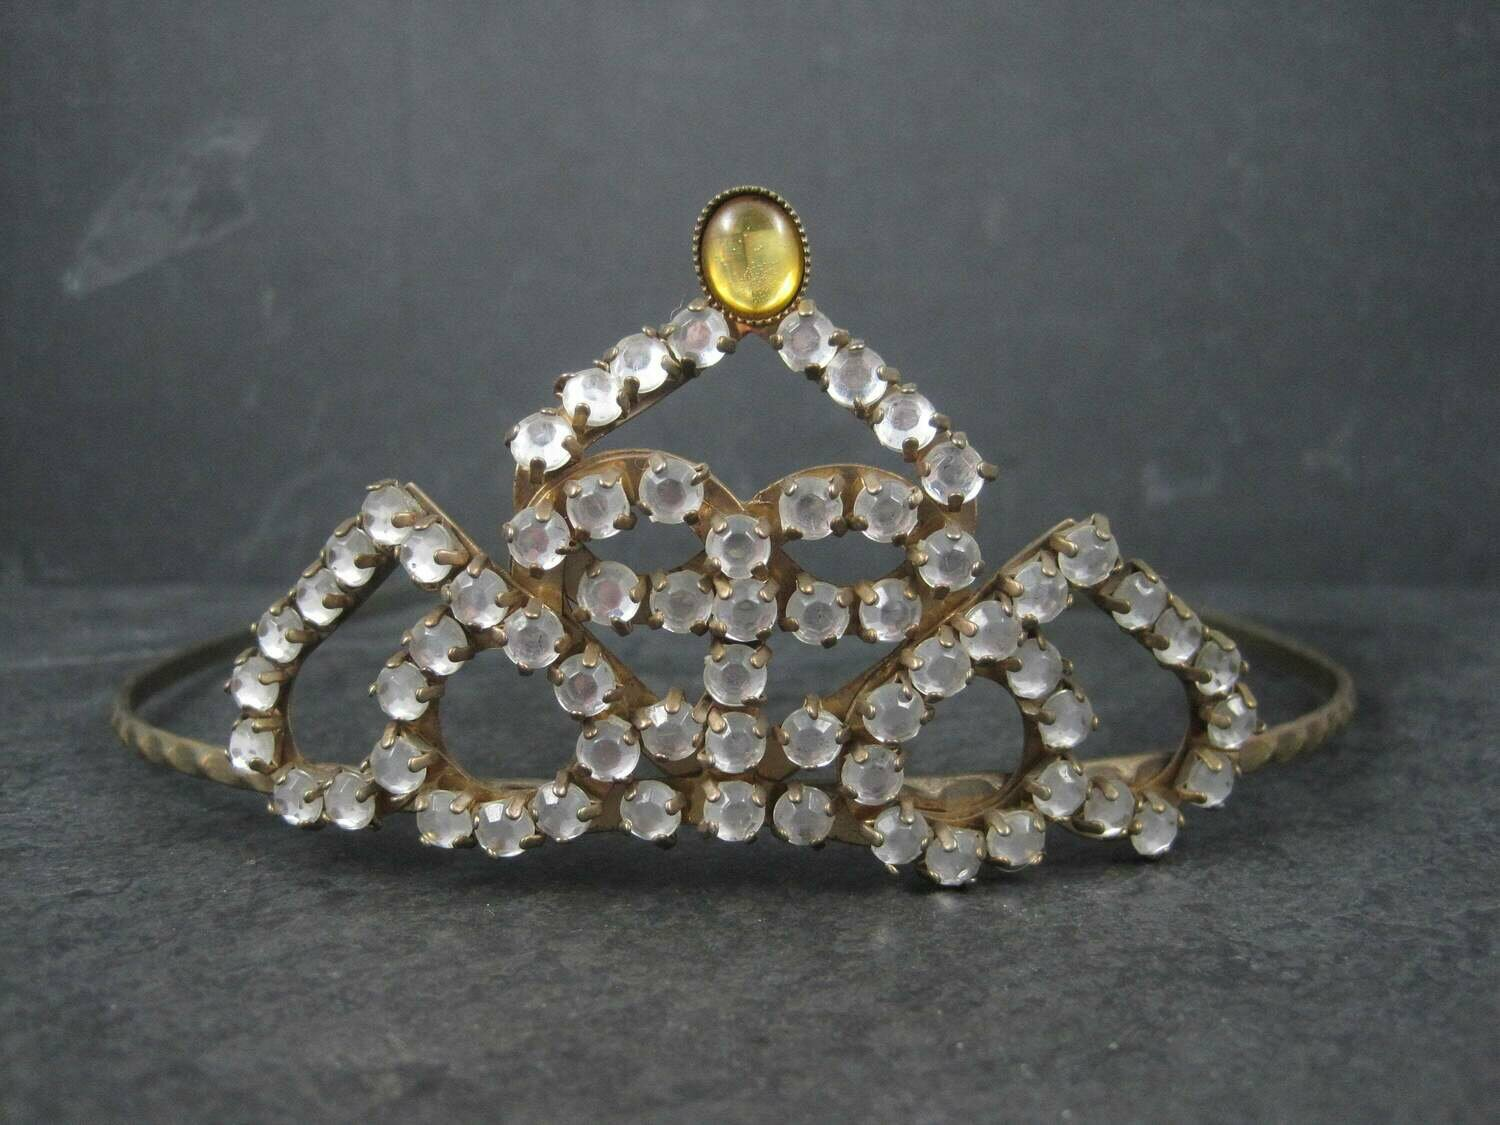 Antique Art Deco Heart Rhinestone Tiara Crown